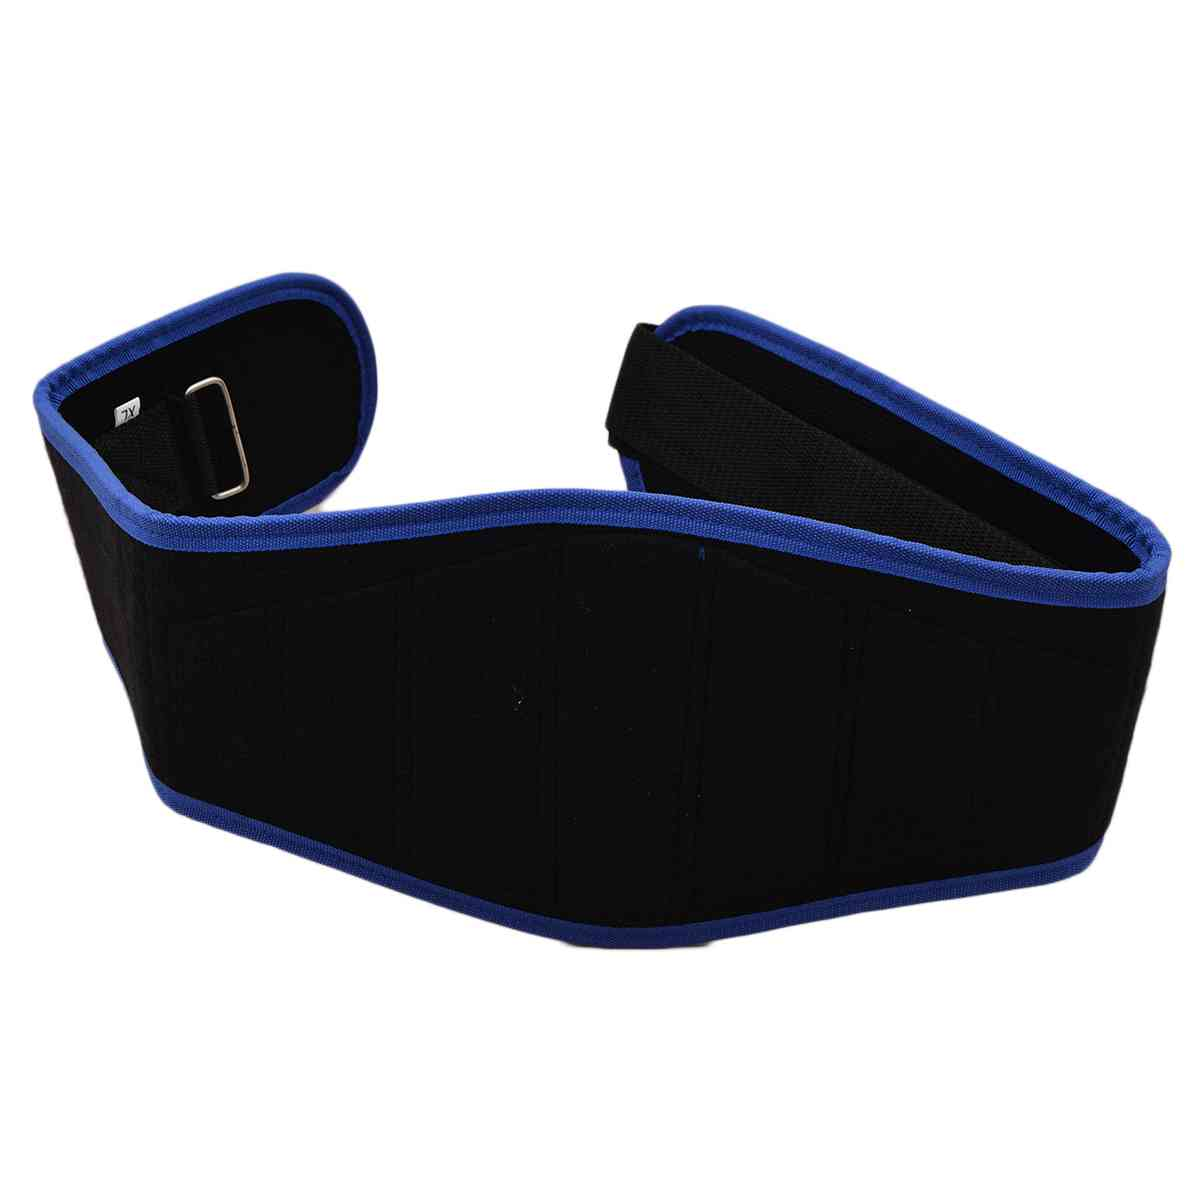 Weight Lifting Gym Fitness Power Belt Back Pain Support Belt - Blue